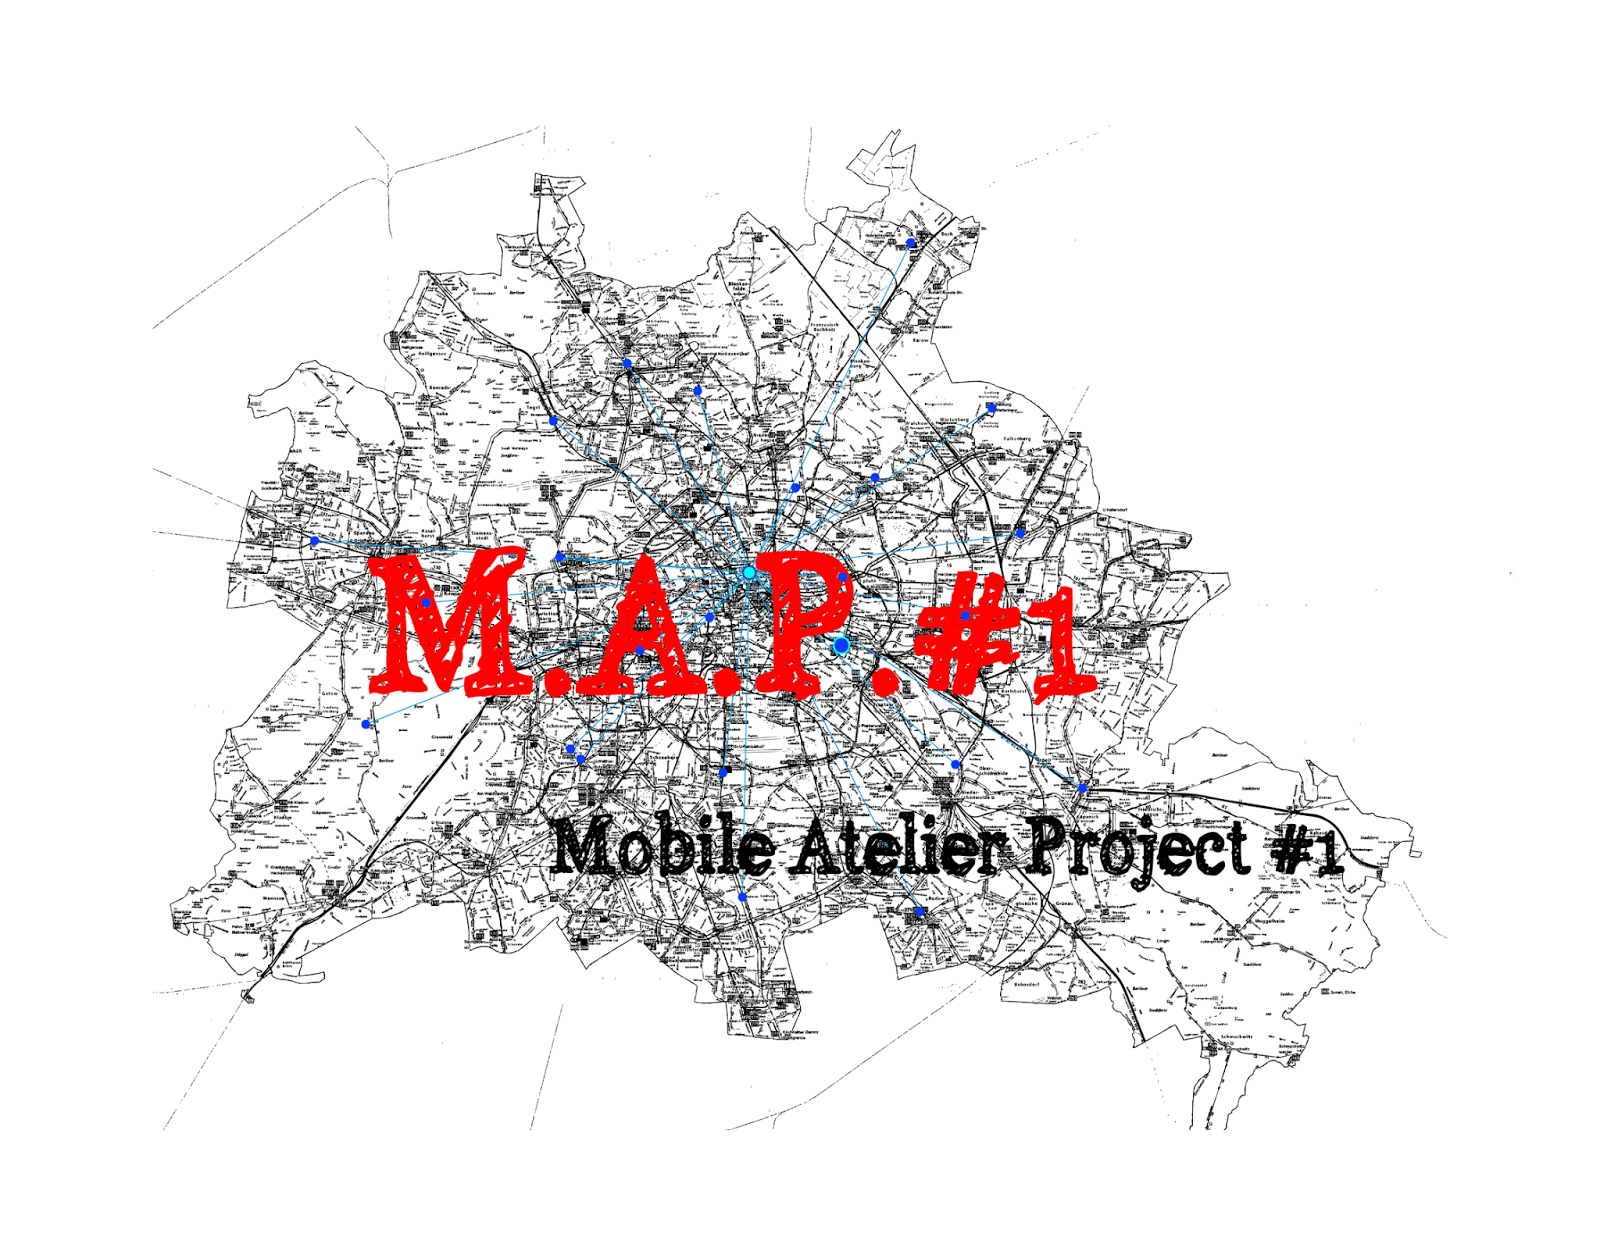 http://issuu.com/artprotacheles/docs/map1